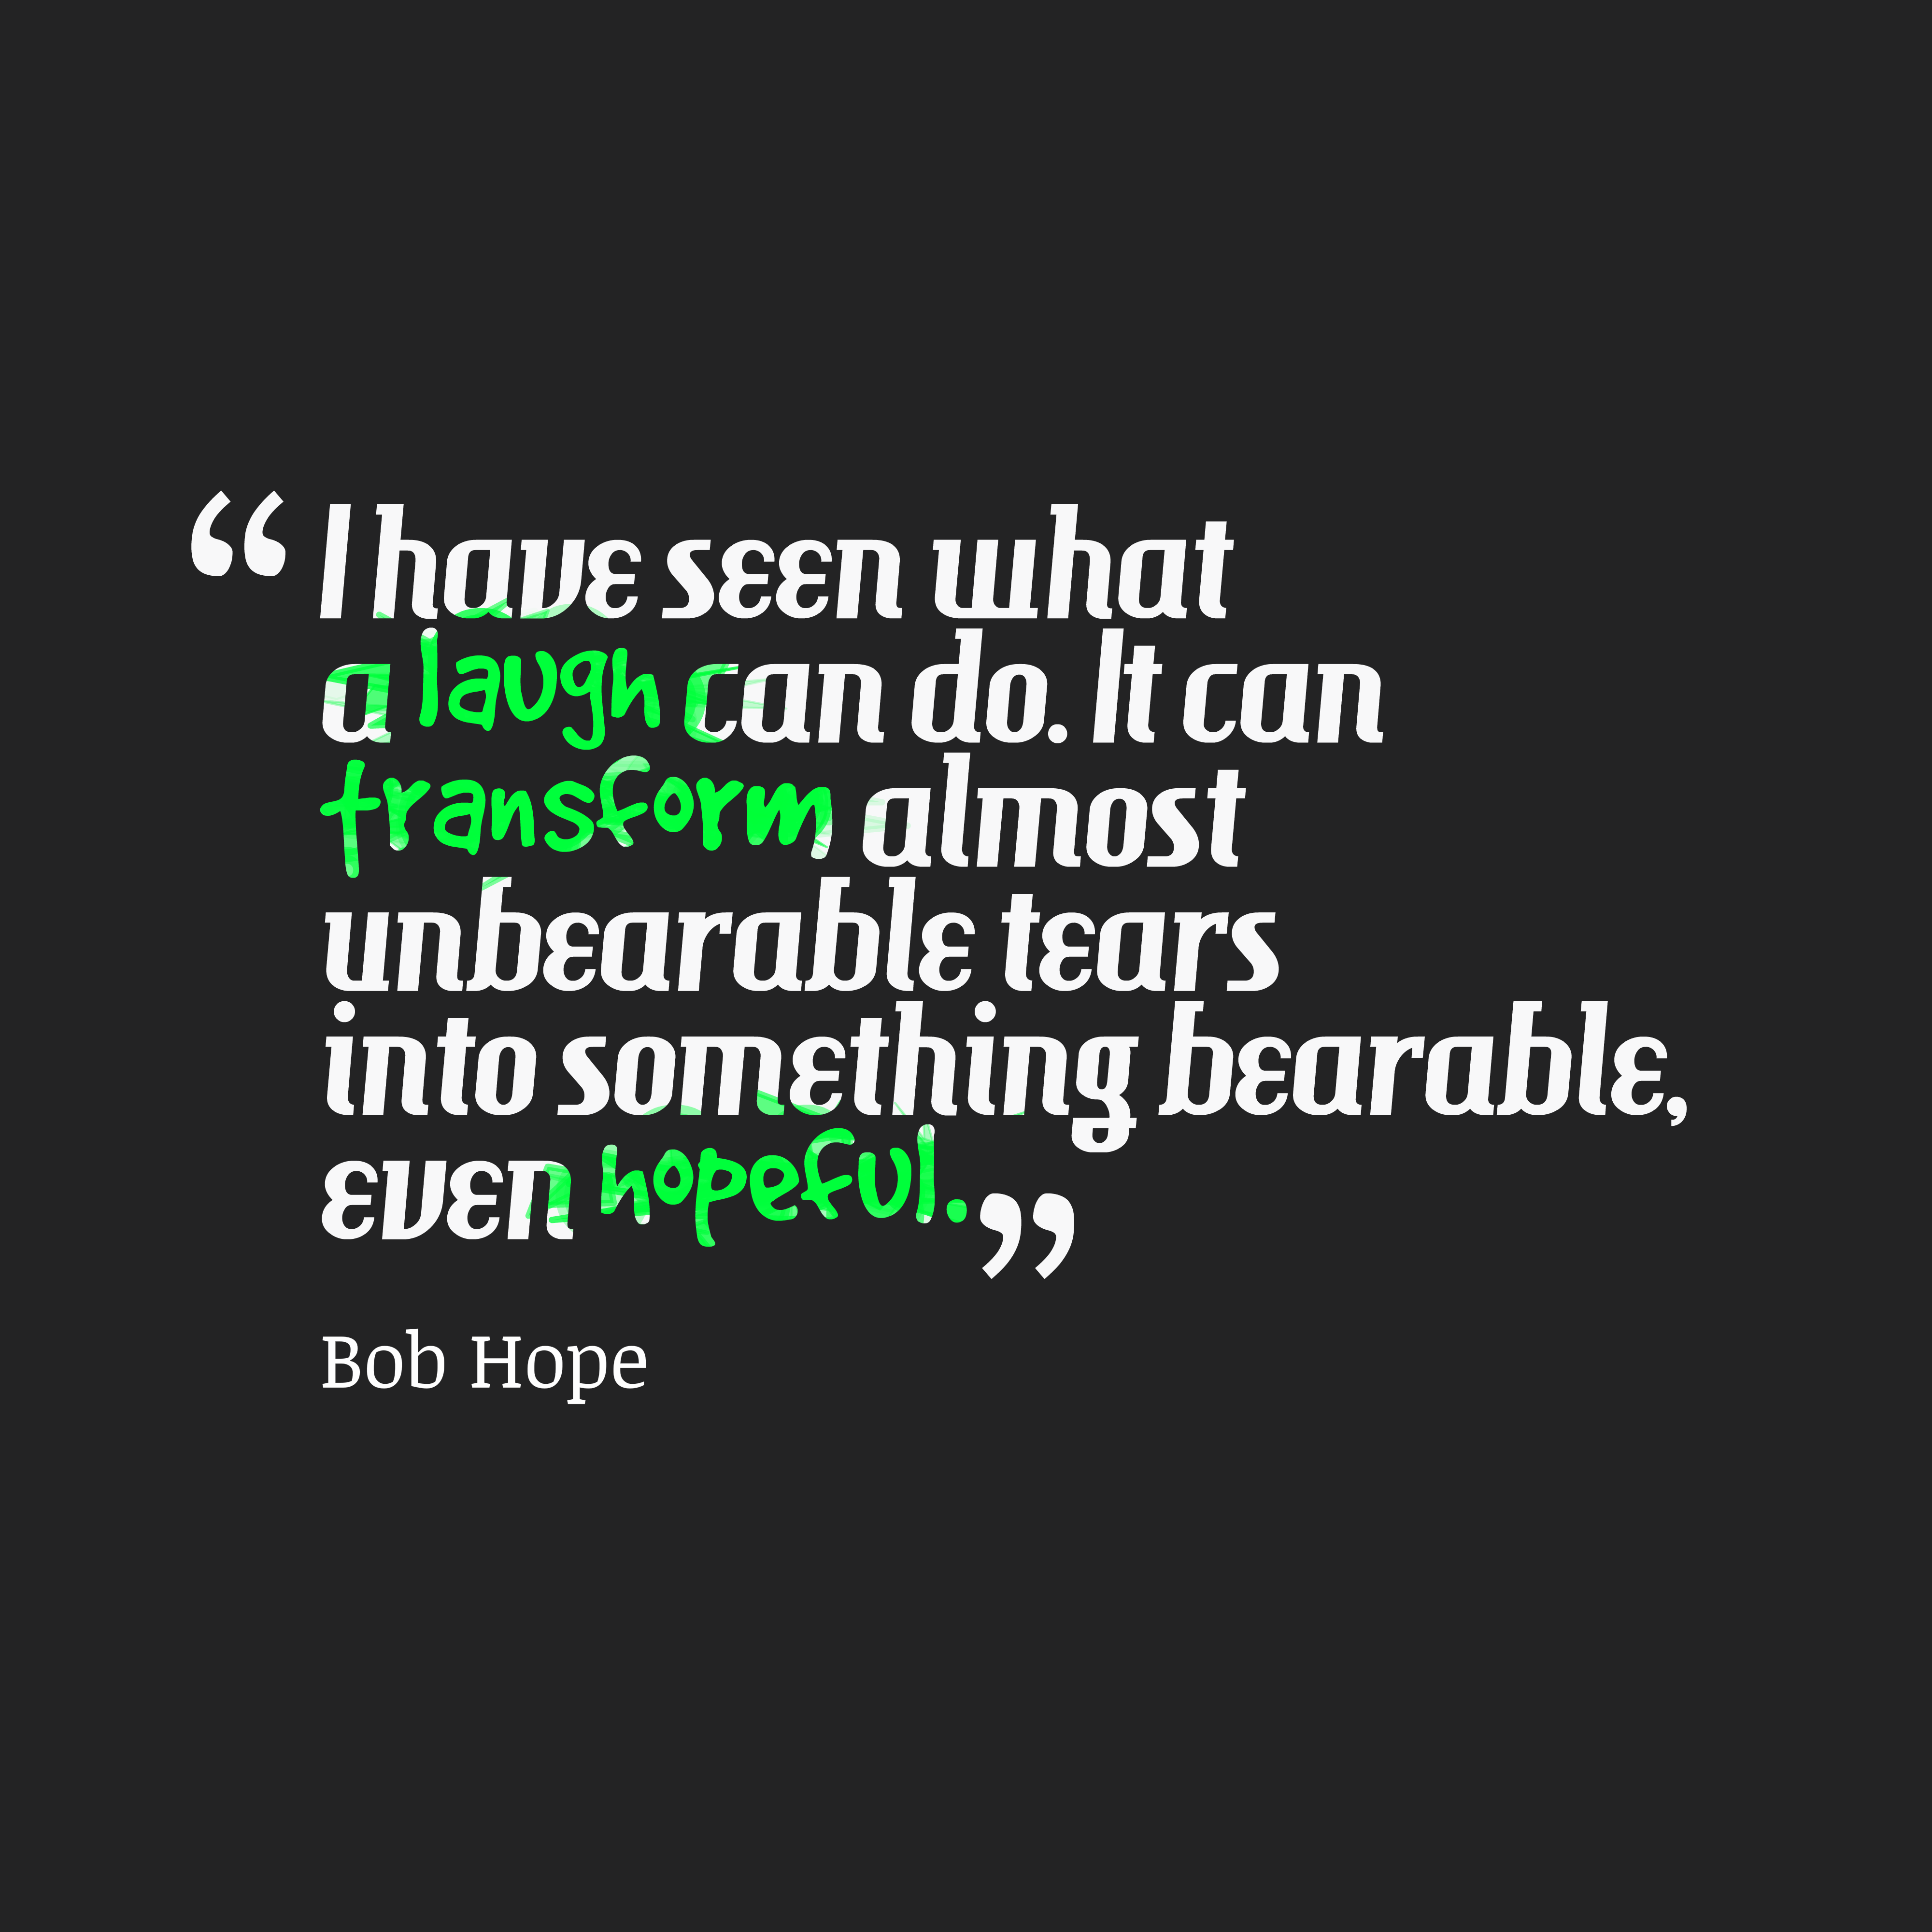 Laughter Quotes With Pictures: Bob Hope Quote About Laughter